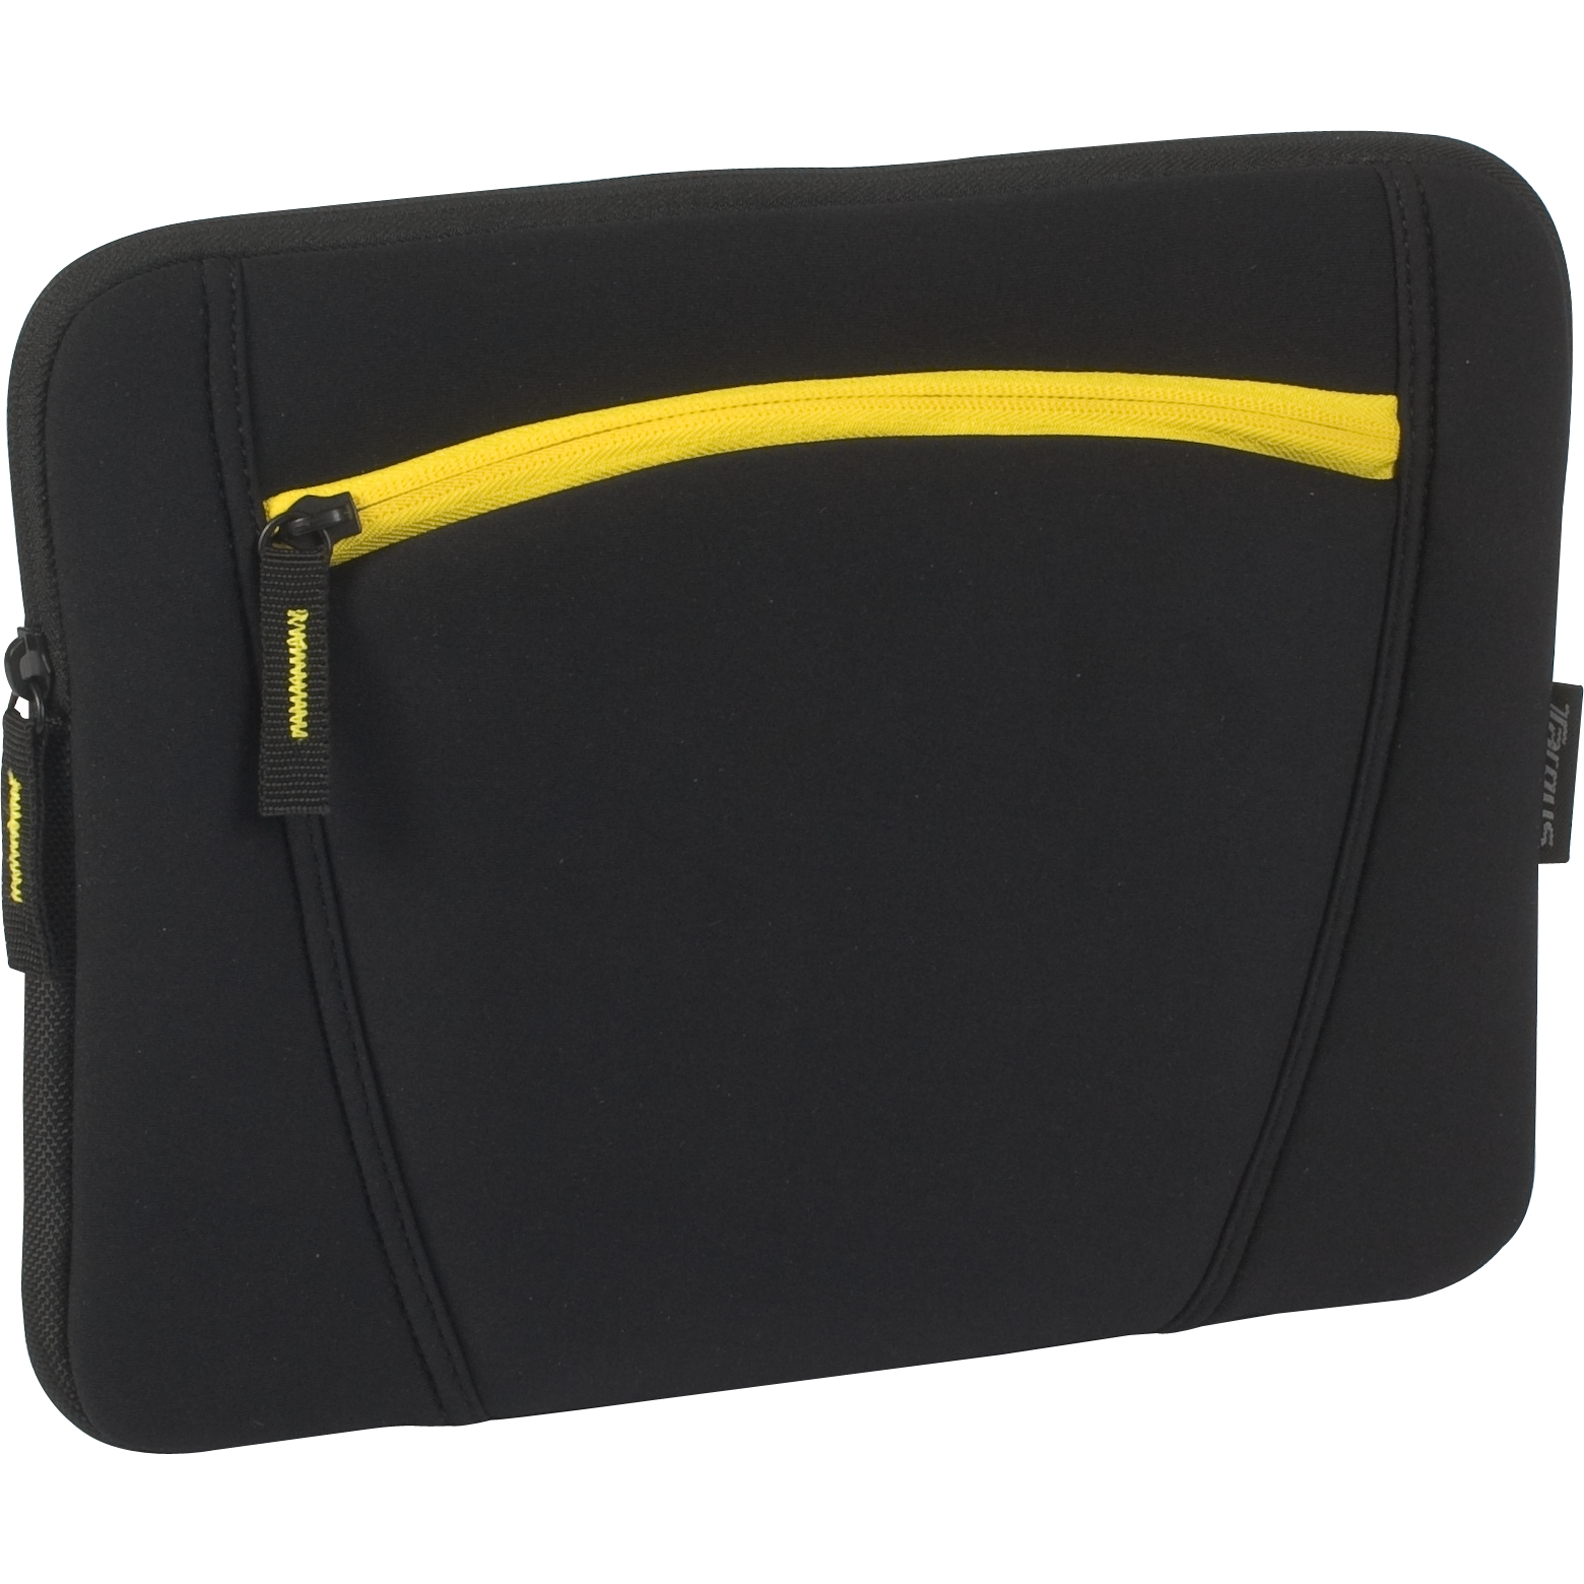 13 sleeve with accessory pocket for macbook pro tss283us black sleeves targus. Black Bedroom Furniture Sets. Home Design Ideas